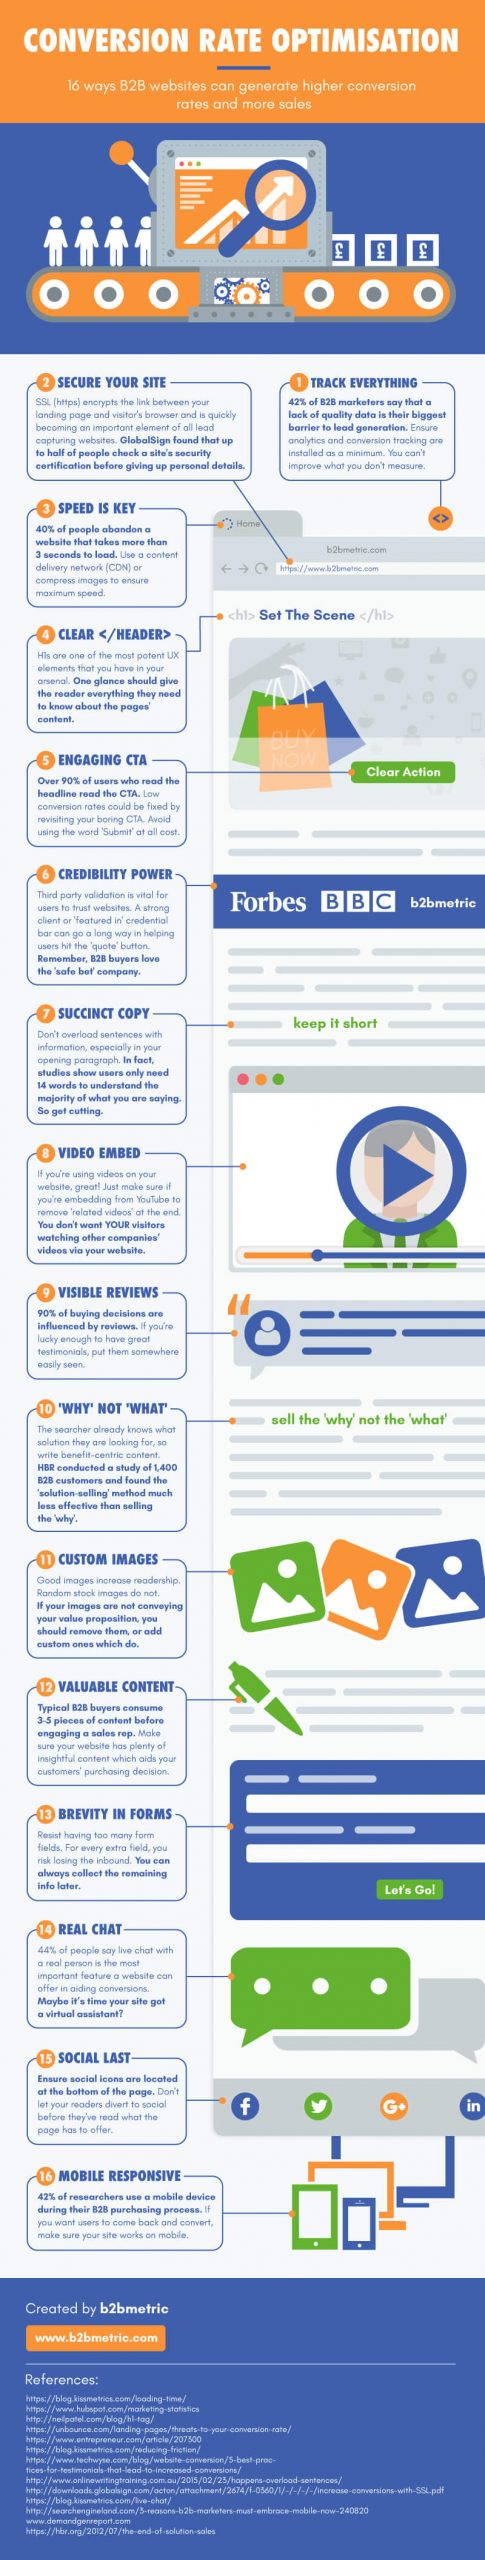 Conversion Rate Infographic compressed